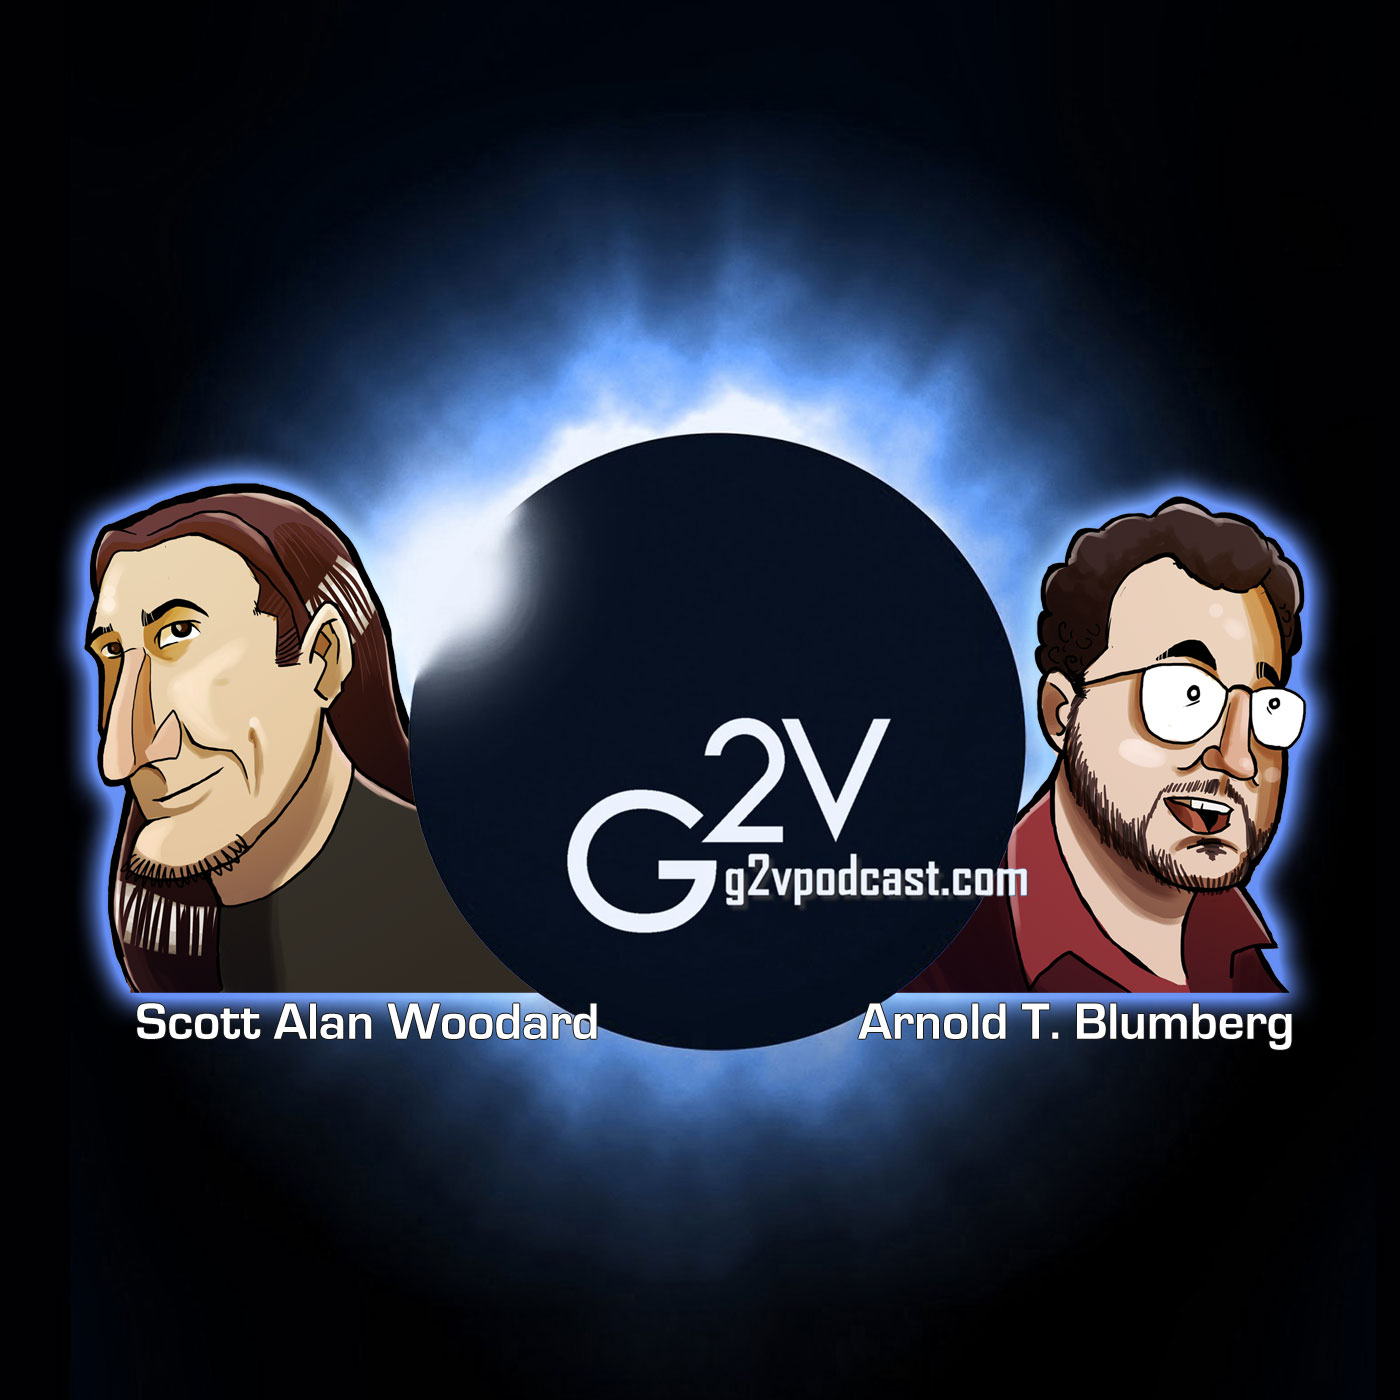 The G2V Podcast: The Pop Culture Audio Magazine logo